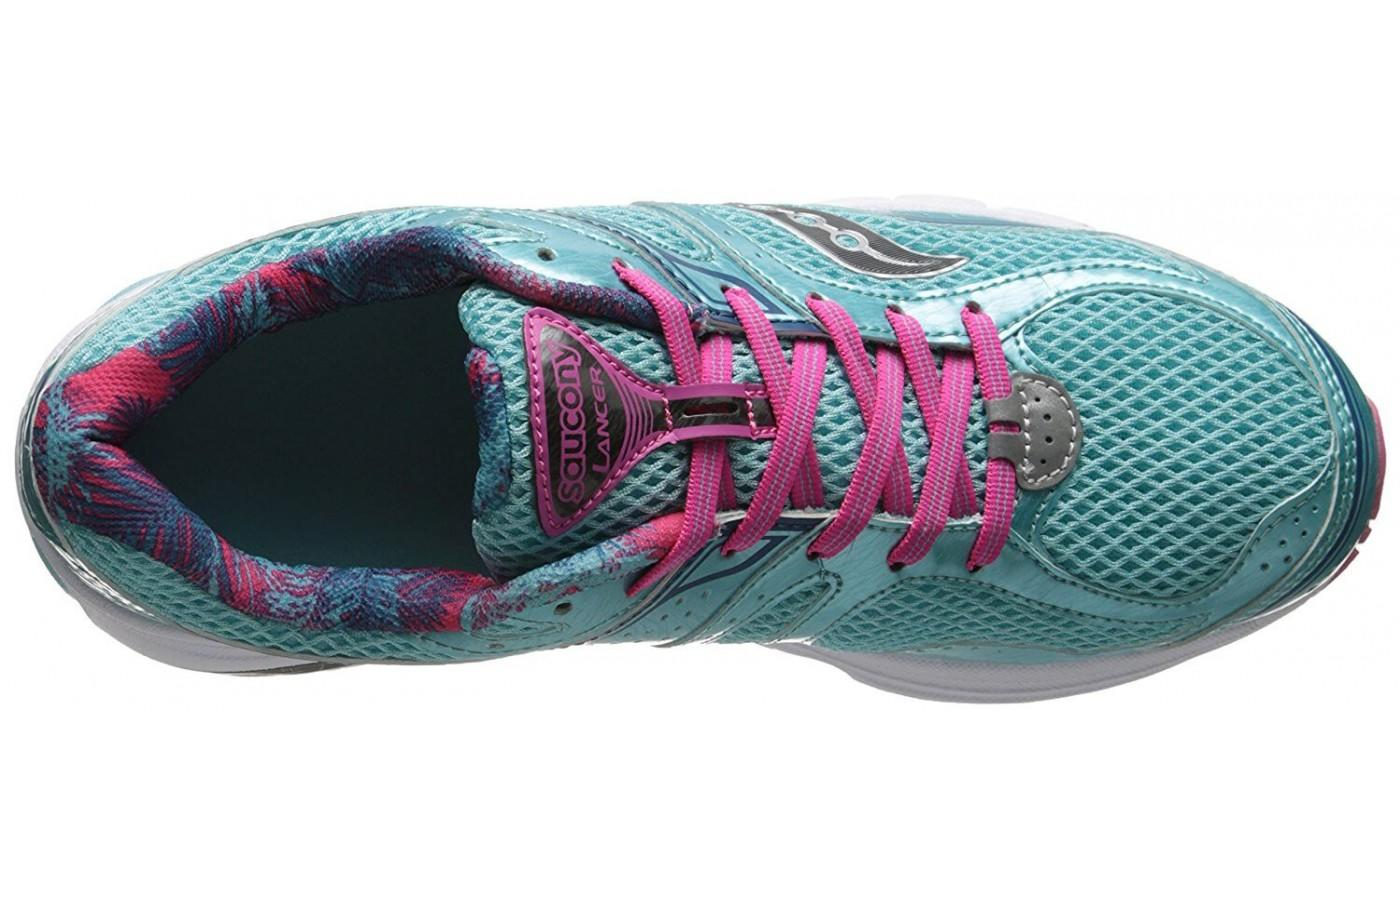 The upper provides runners with a great mix of breathability and support.